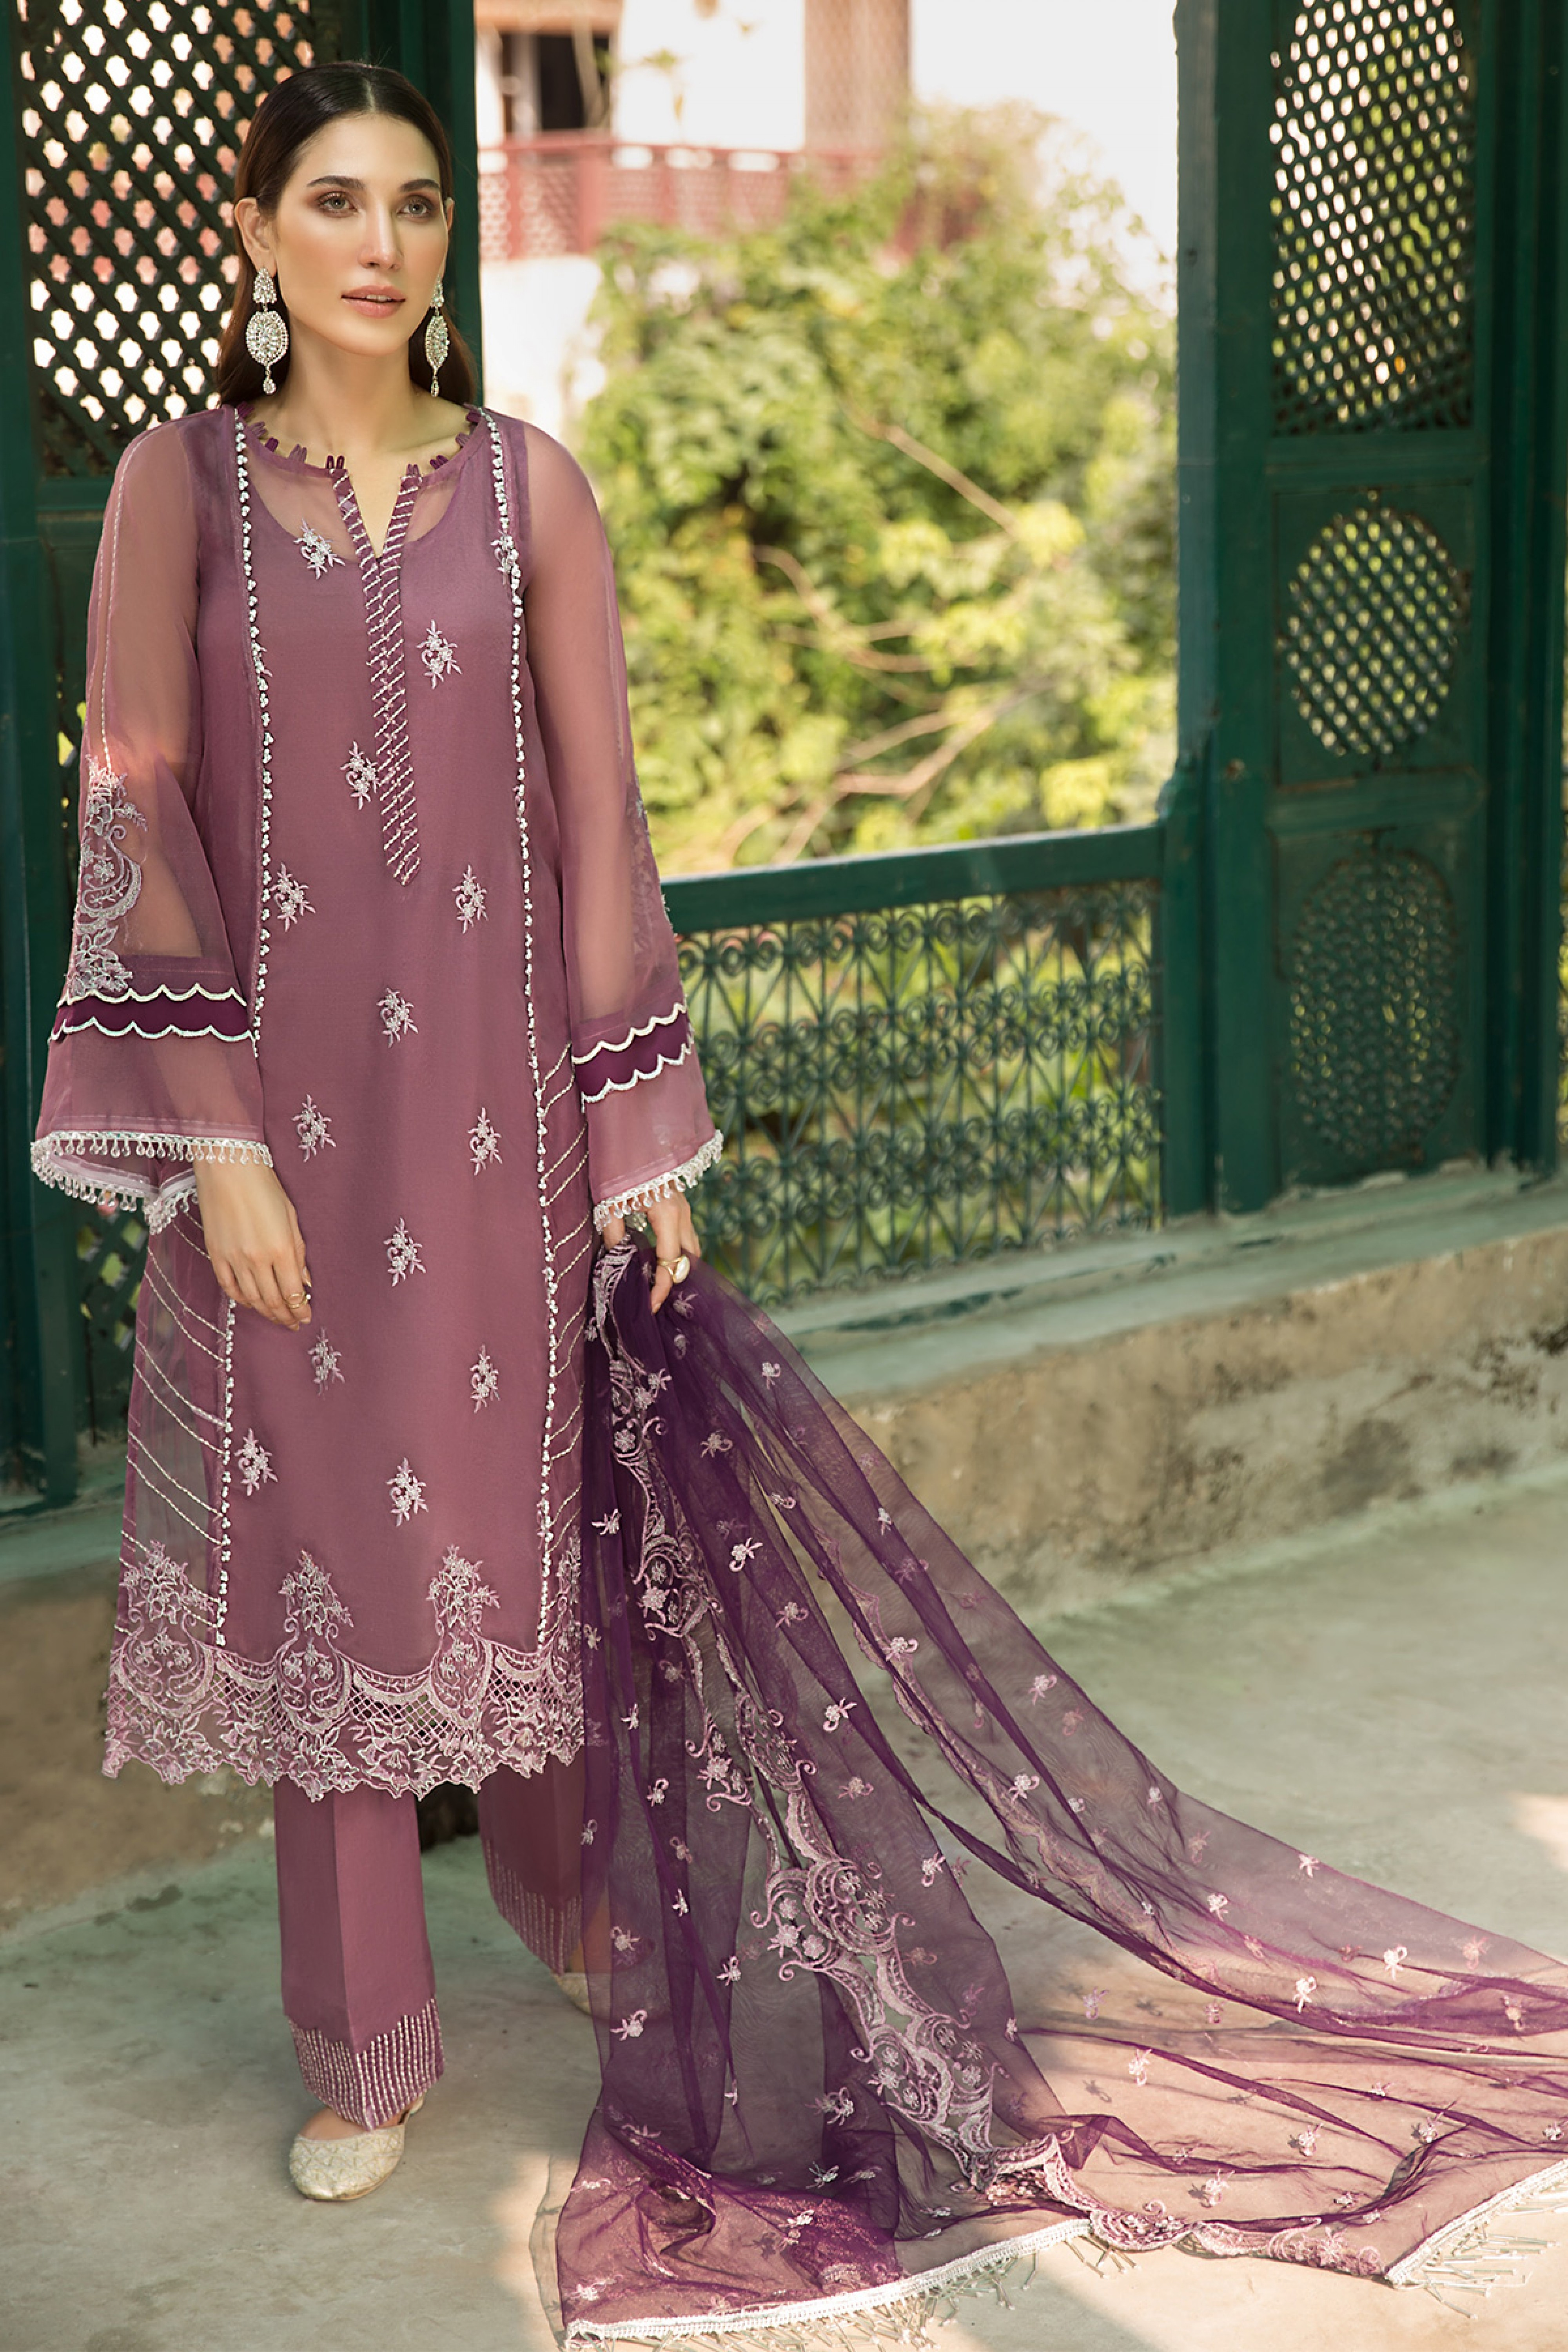 Dusty Lavender(Embroidered Shirt & Dupatta)